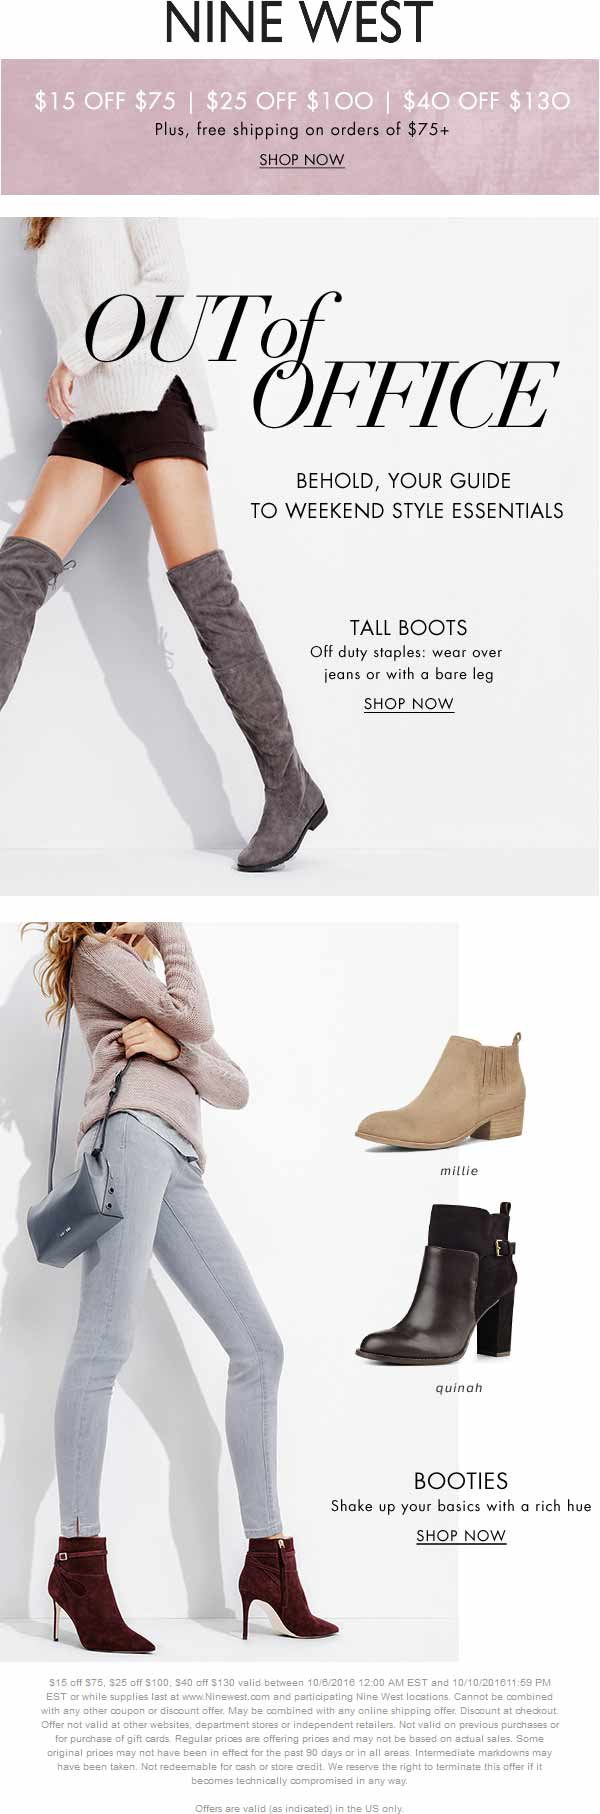 Nine West Coupon October 2016 $15 off $75 & more at Nine West, ditto online